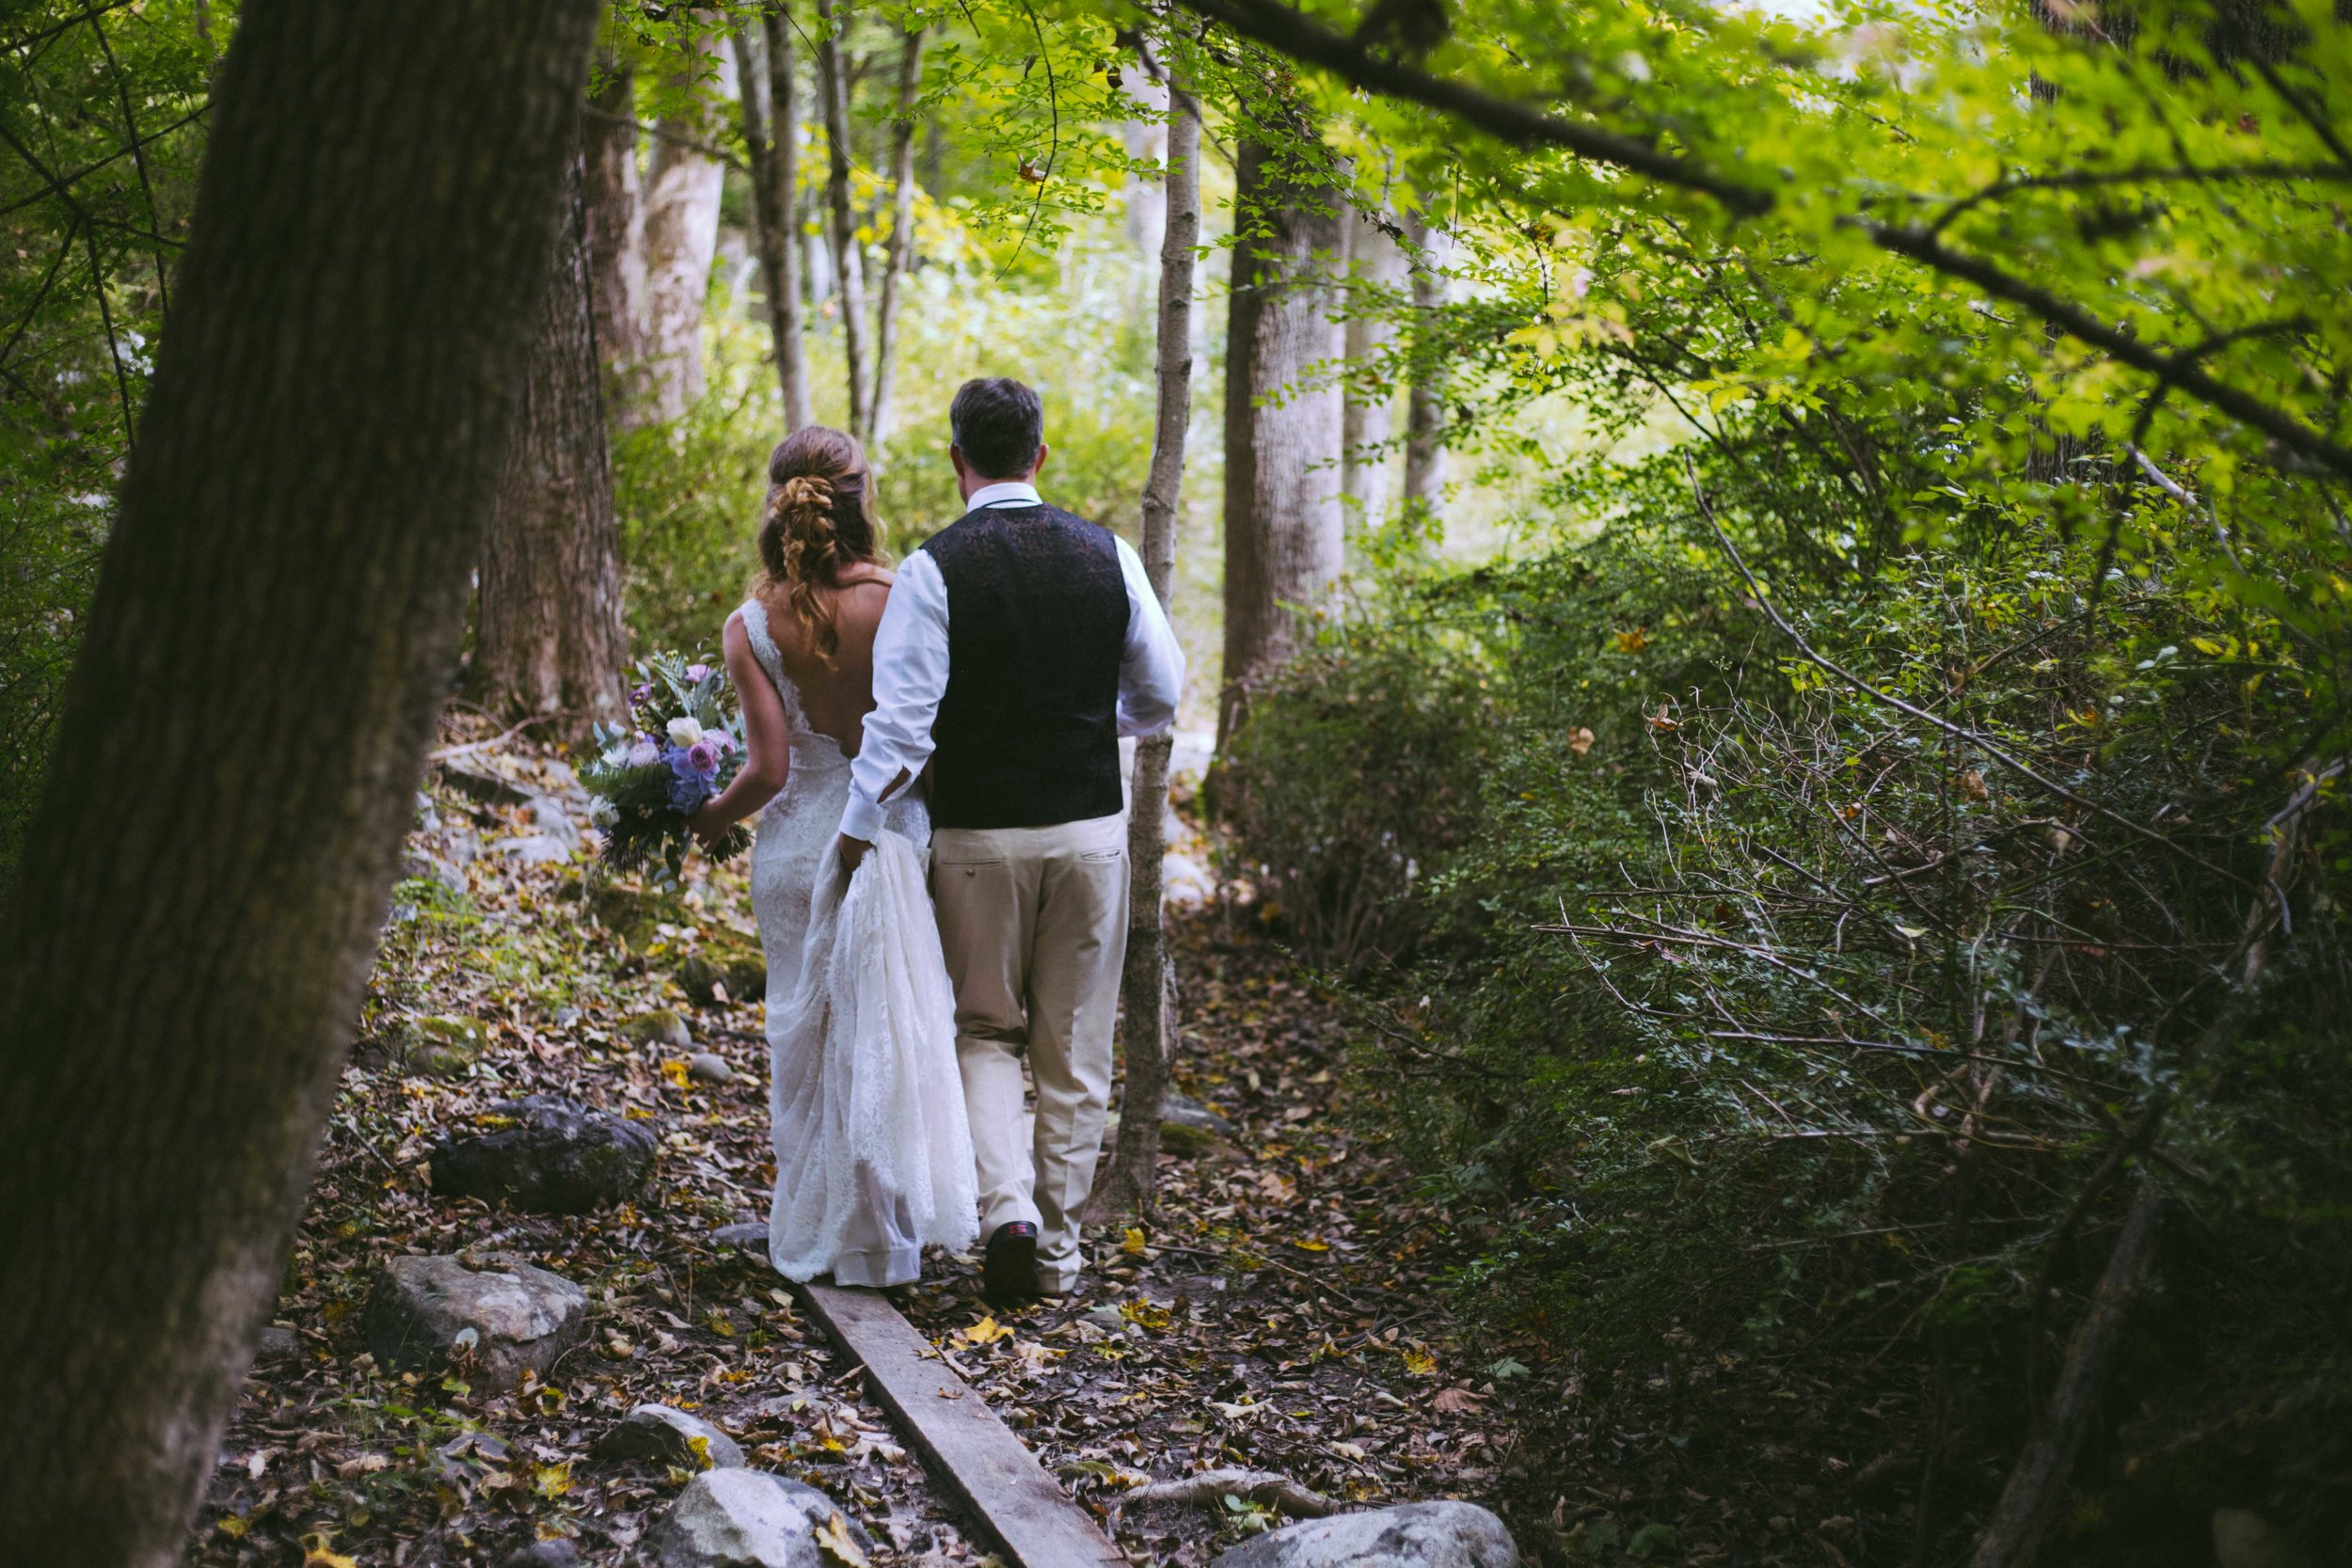 Alysa and Sean's Magical Stillwater Wedding in the Woods-20.jpg